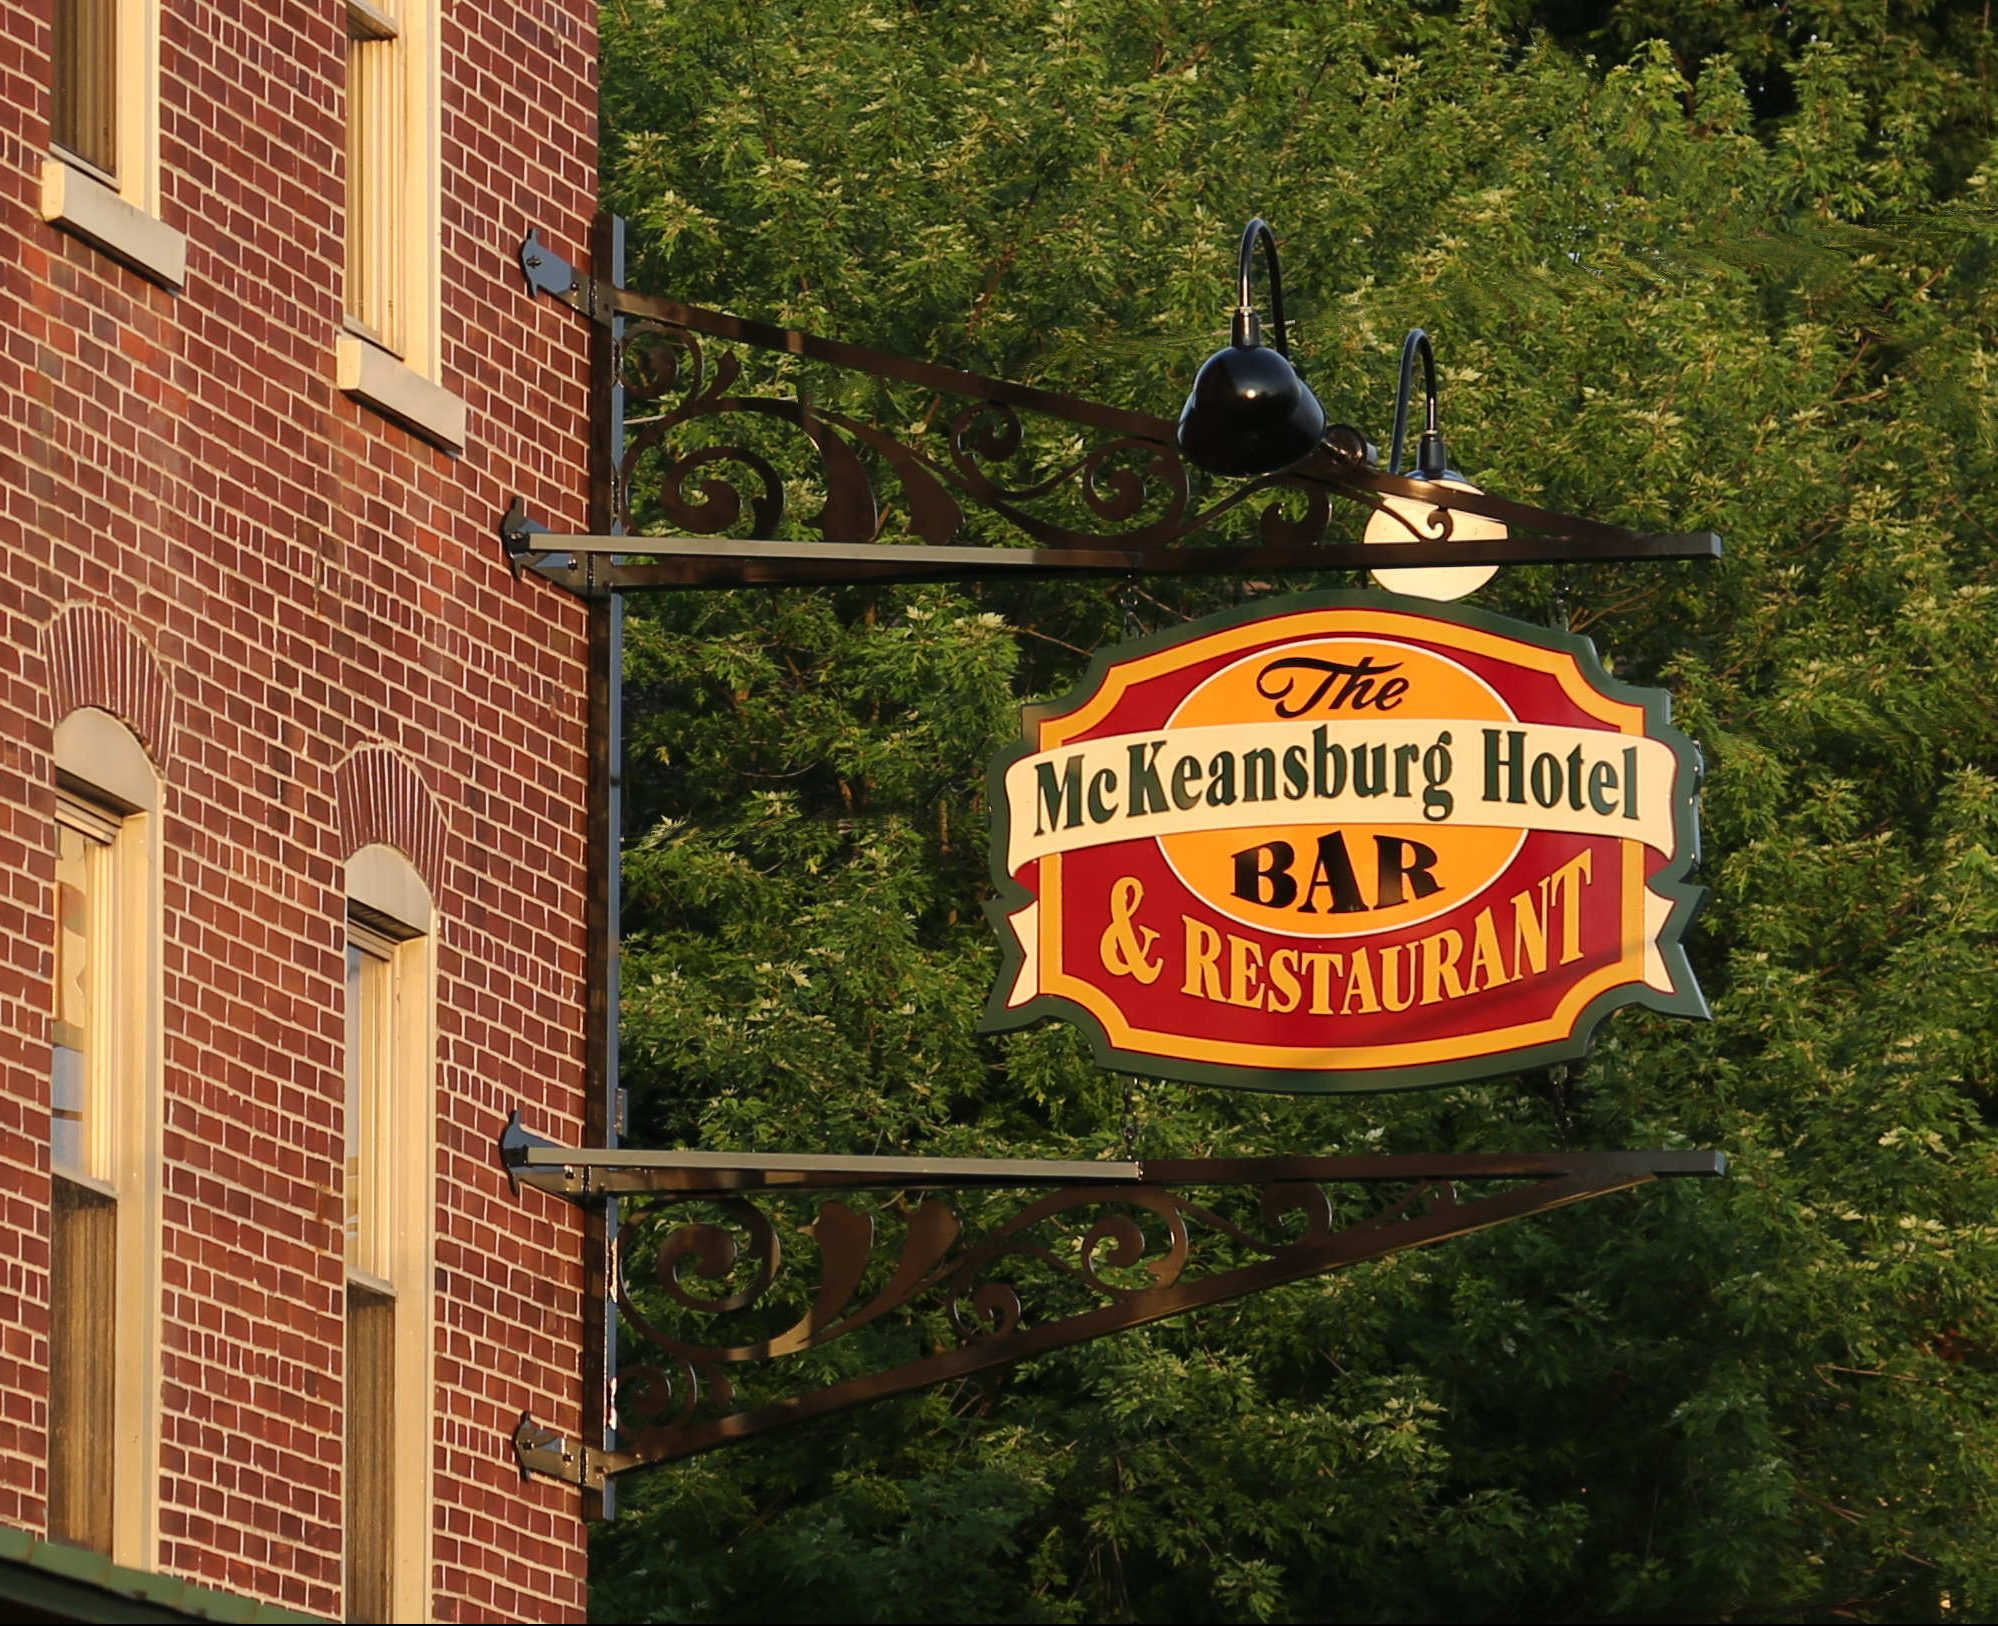 mckeansburg hotel bar restaurant sign